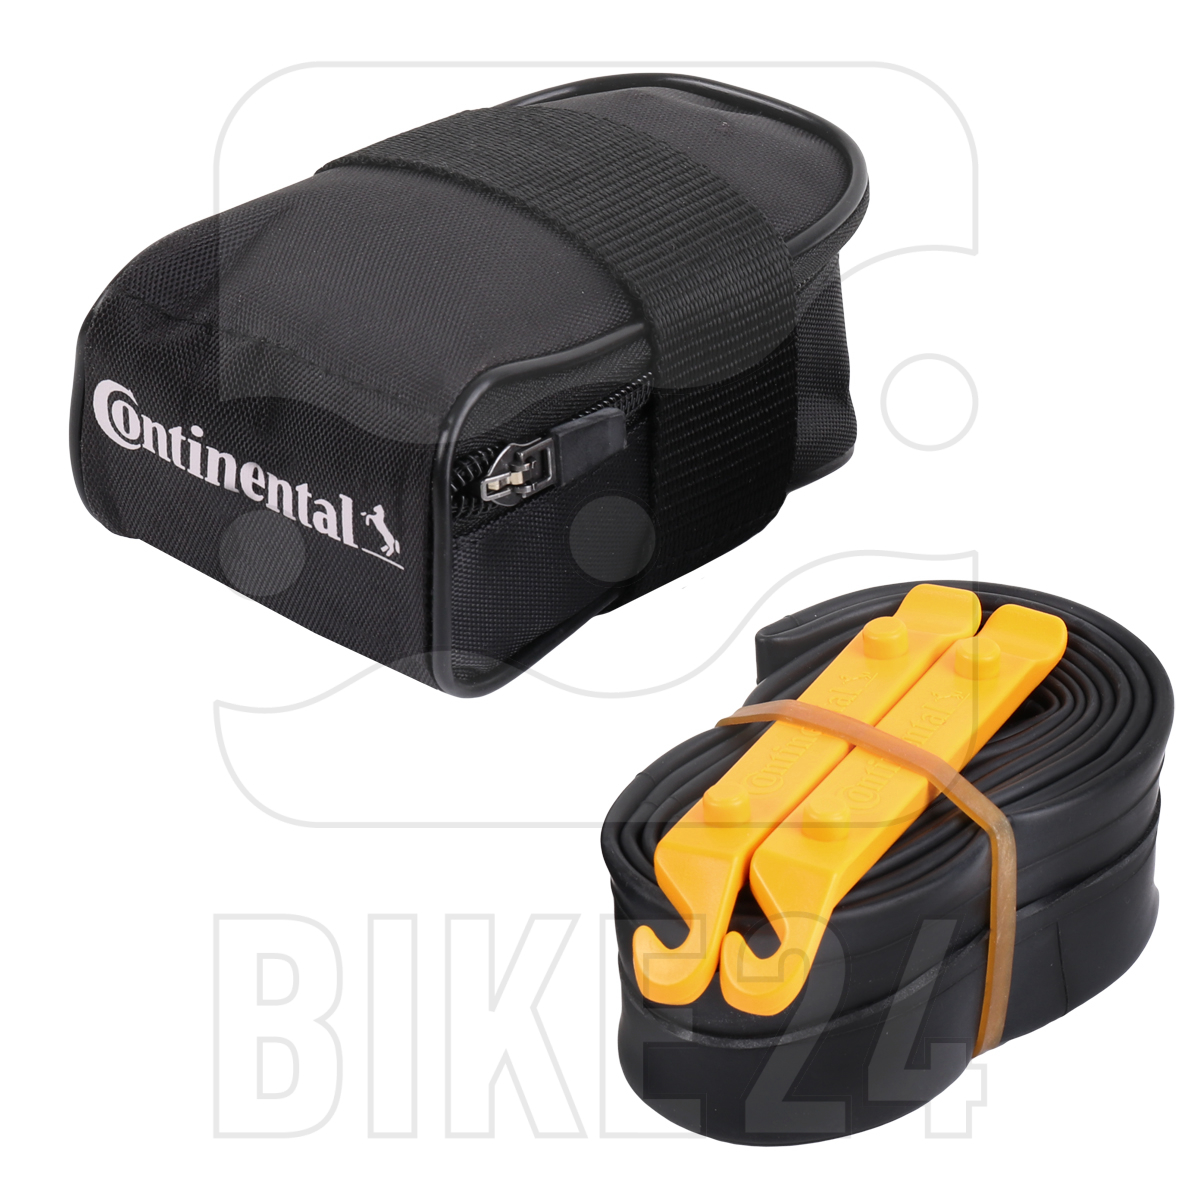 Continental Tube Bag with Tour 28 Tube and 2 Tire Levers Tour